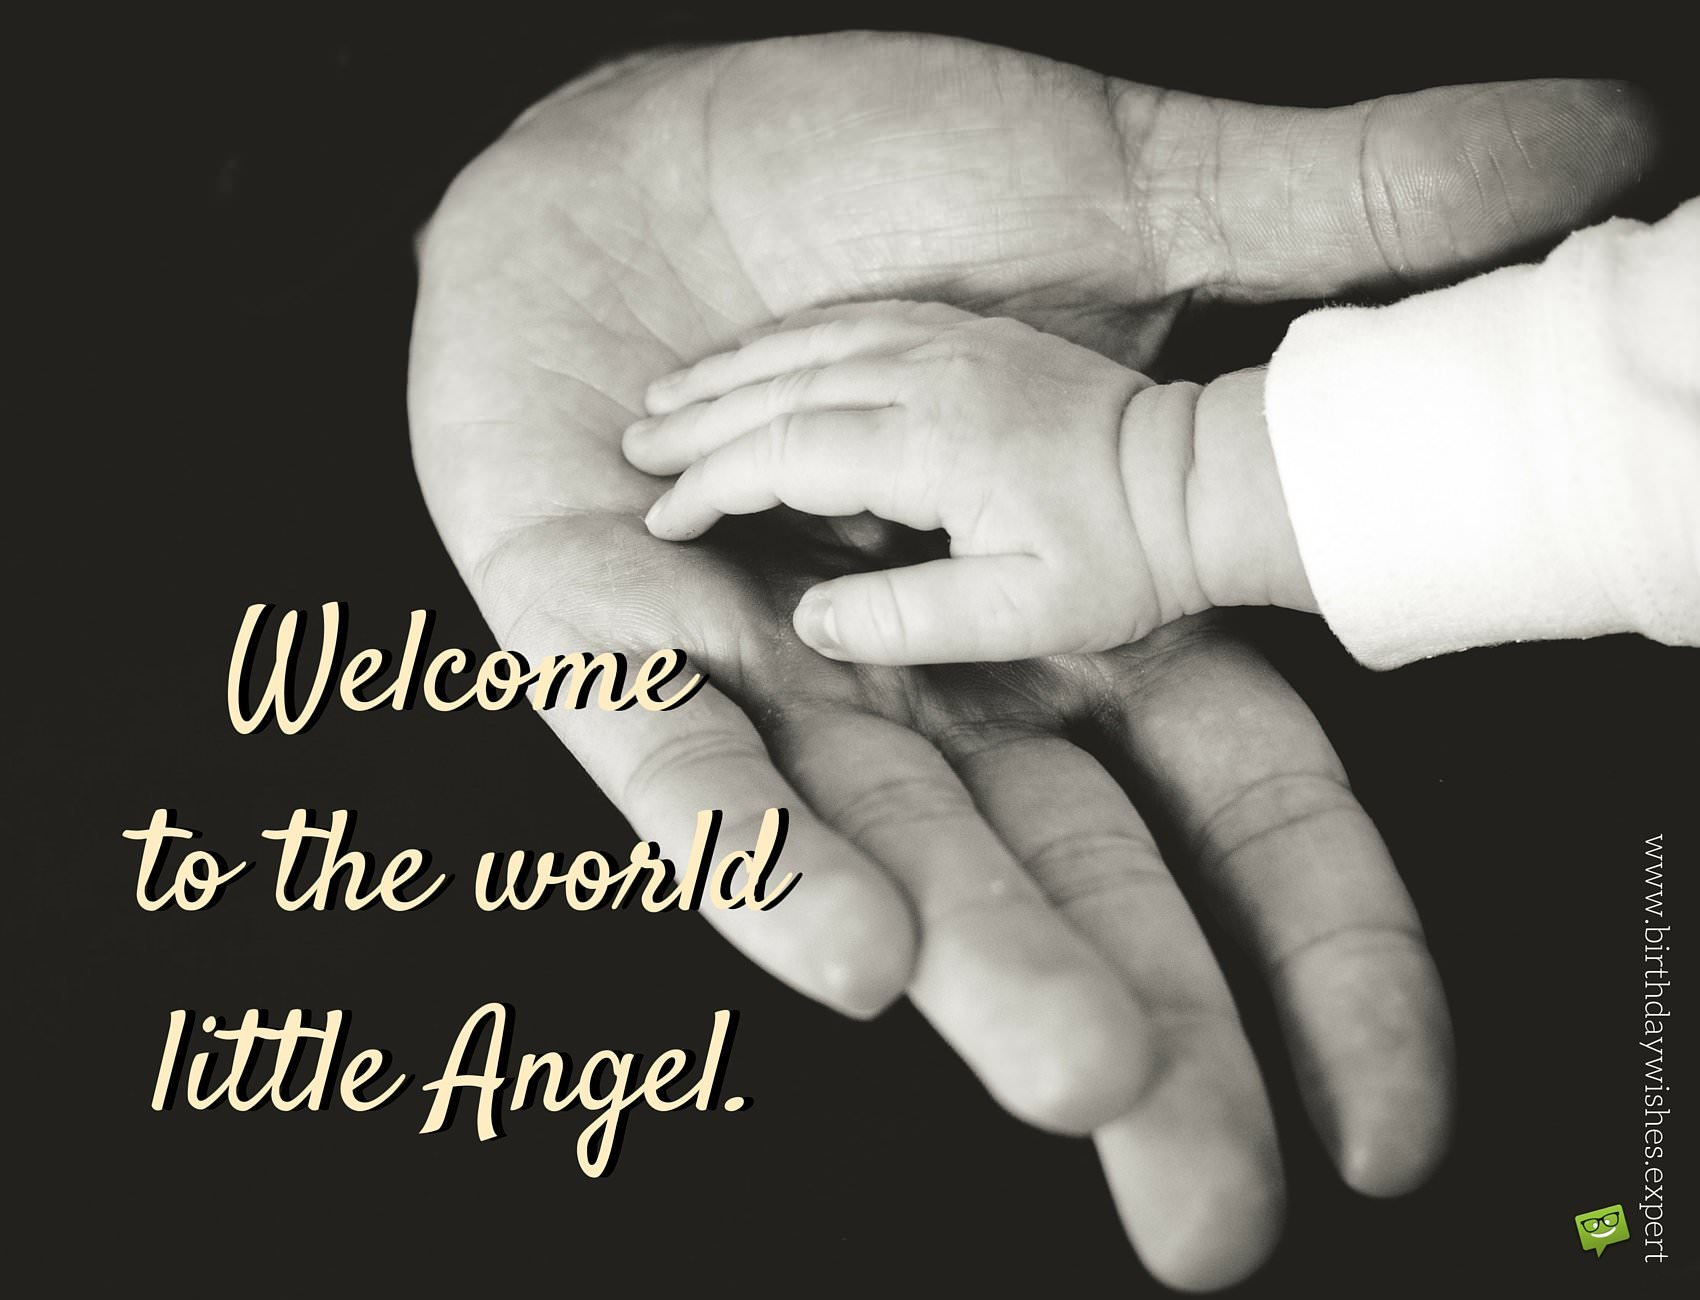 Newborn baby wishes congratulation messages to new parents welcome to the world little angel kristyandbryce Images